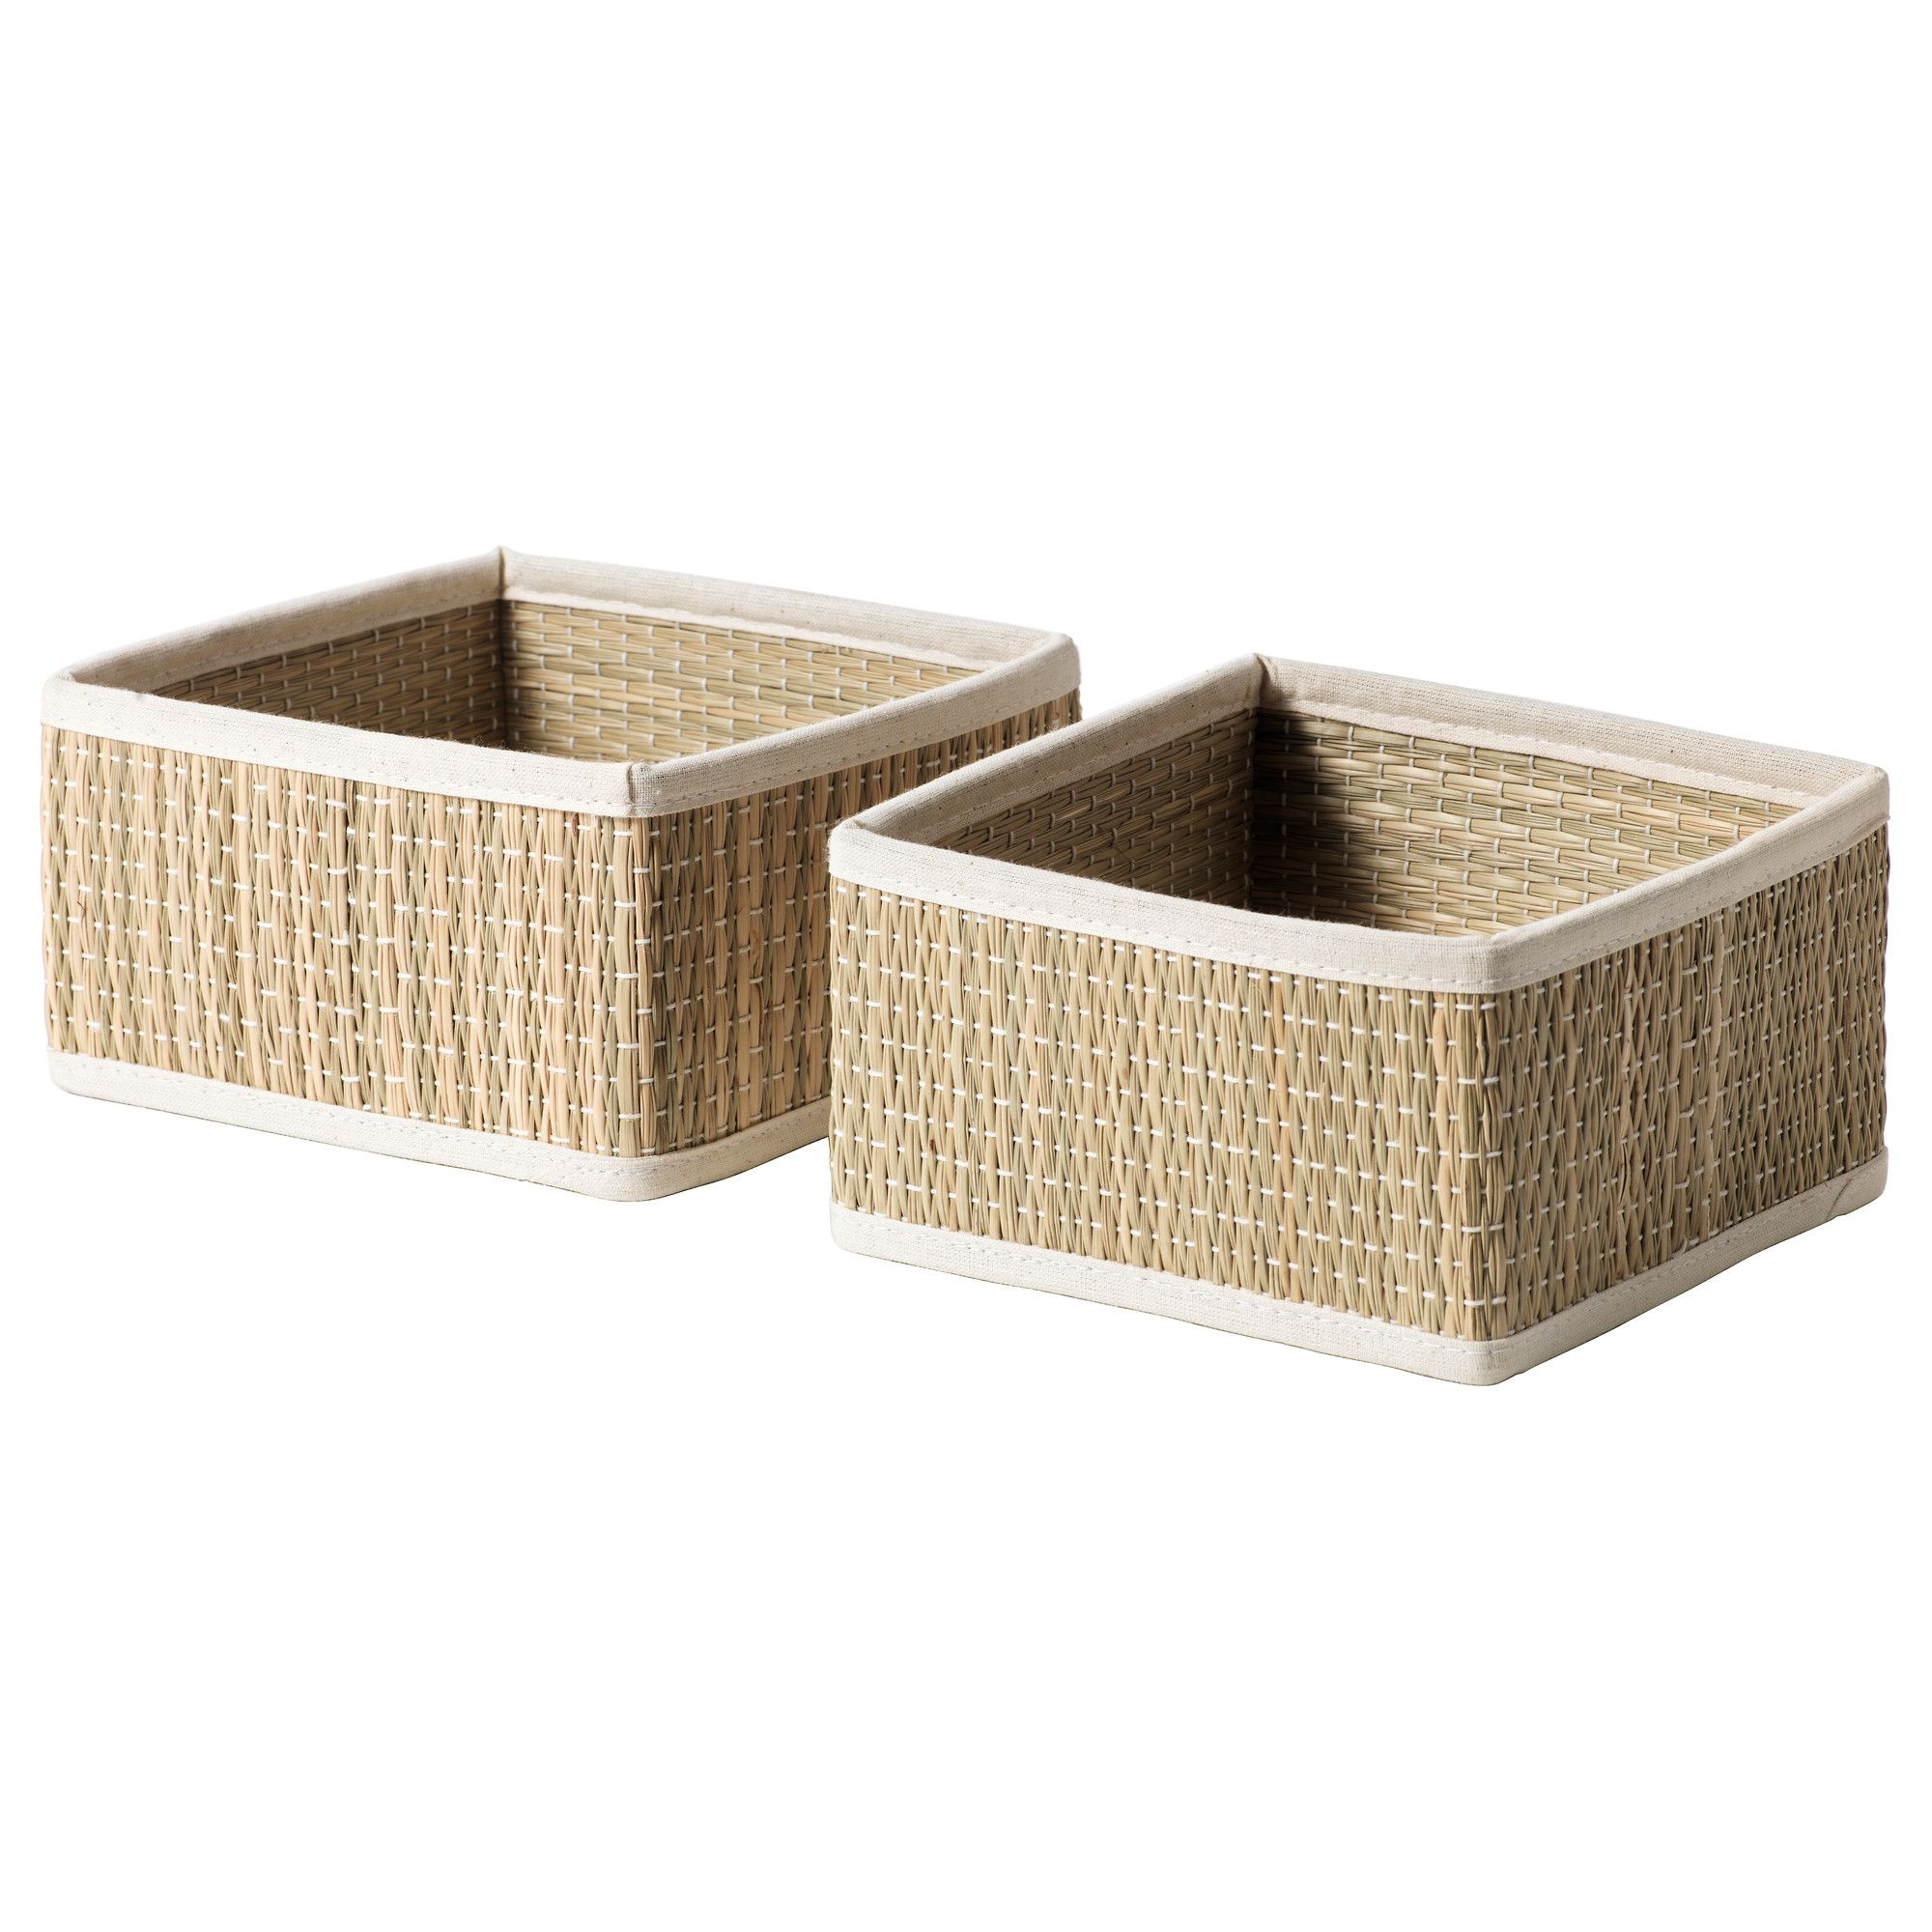 SÅLNAN Basket, seagrass | Ikea shopping, Shelves and Apartments